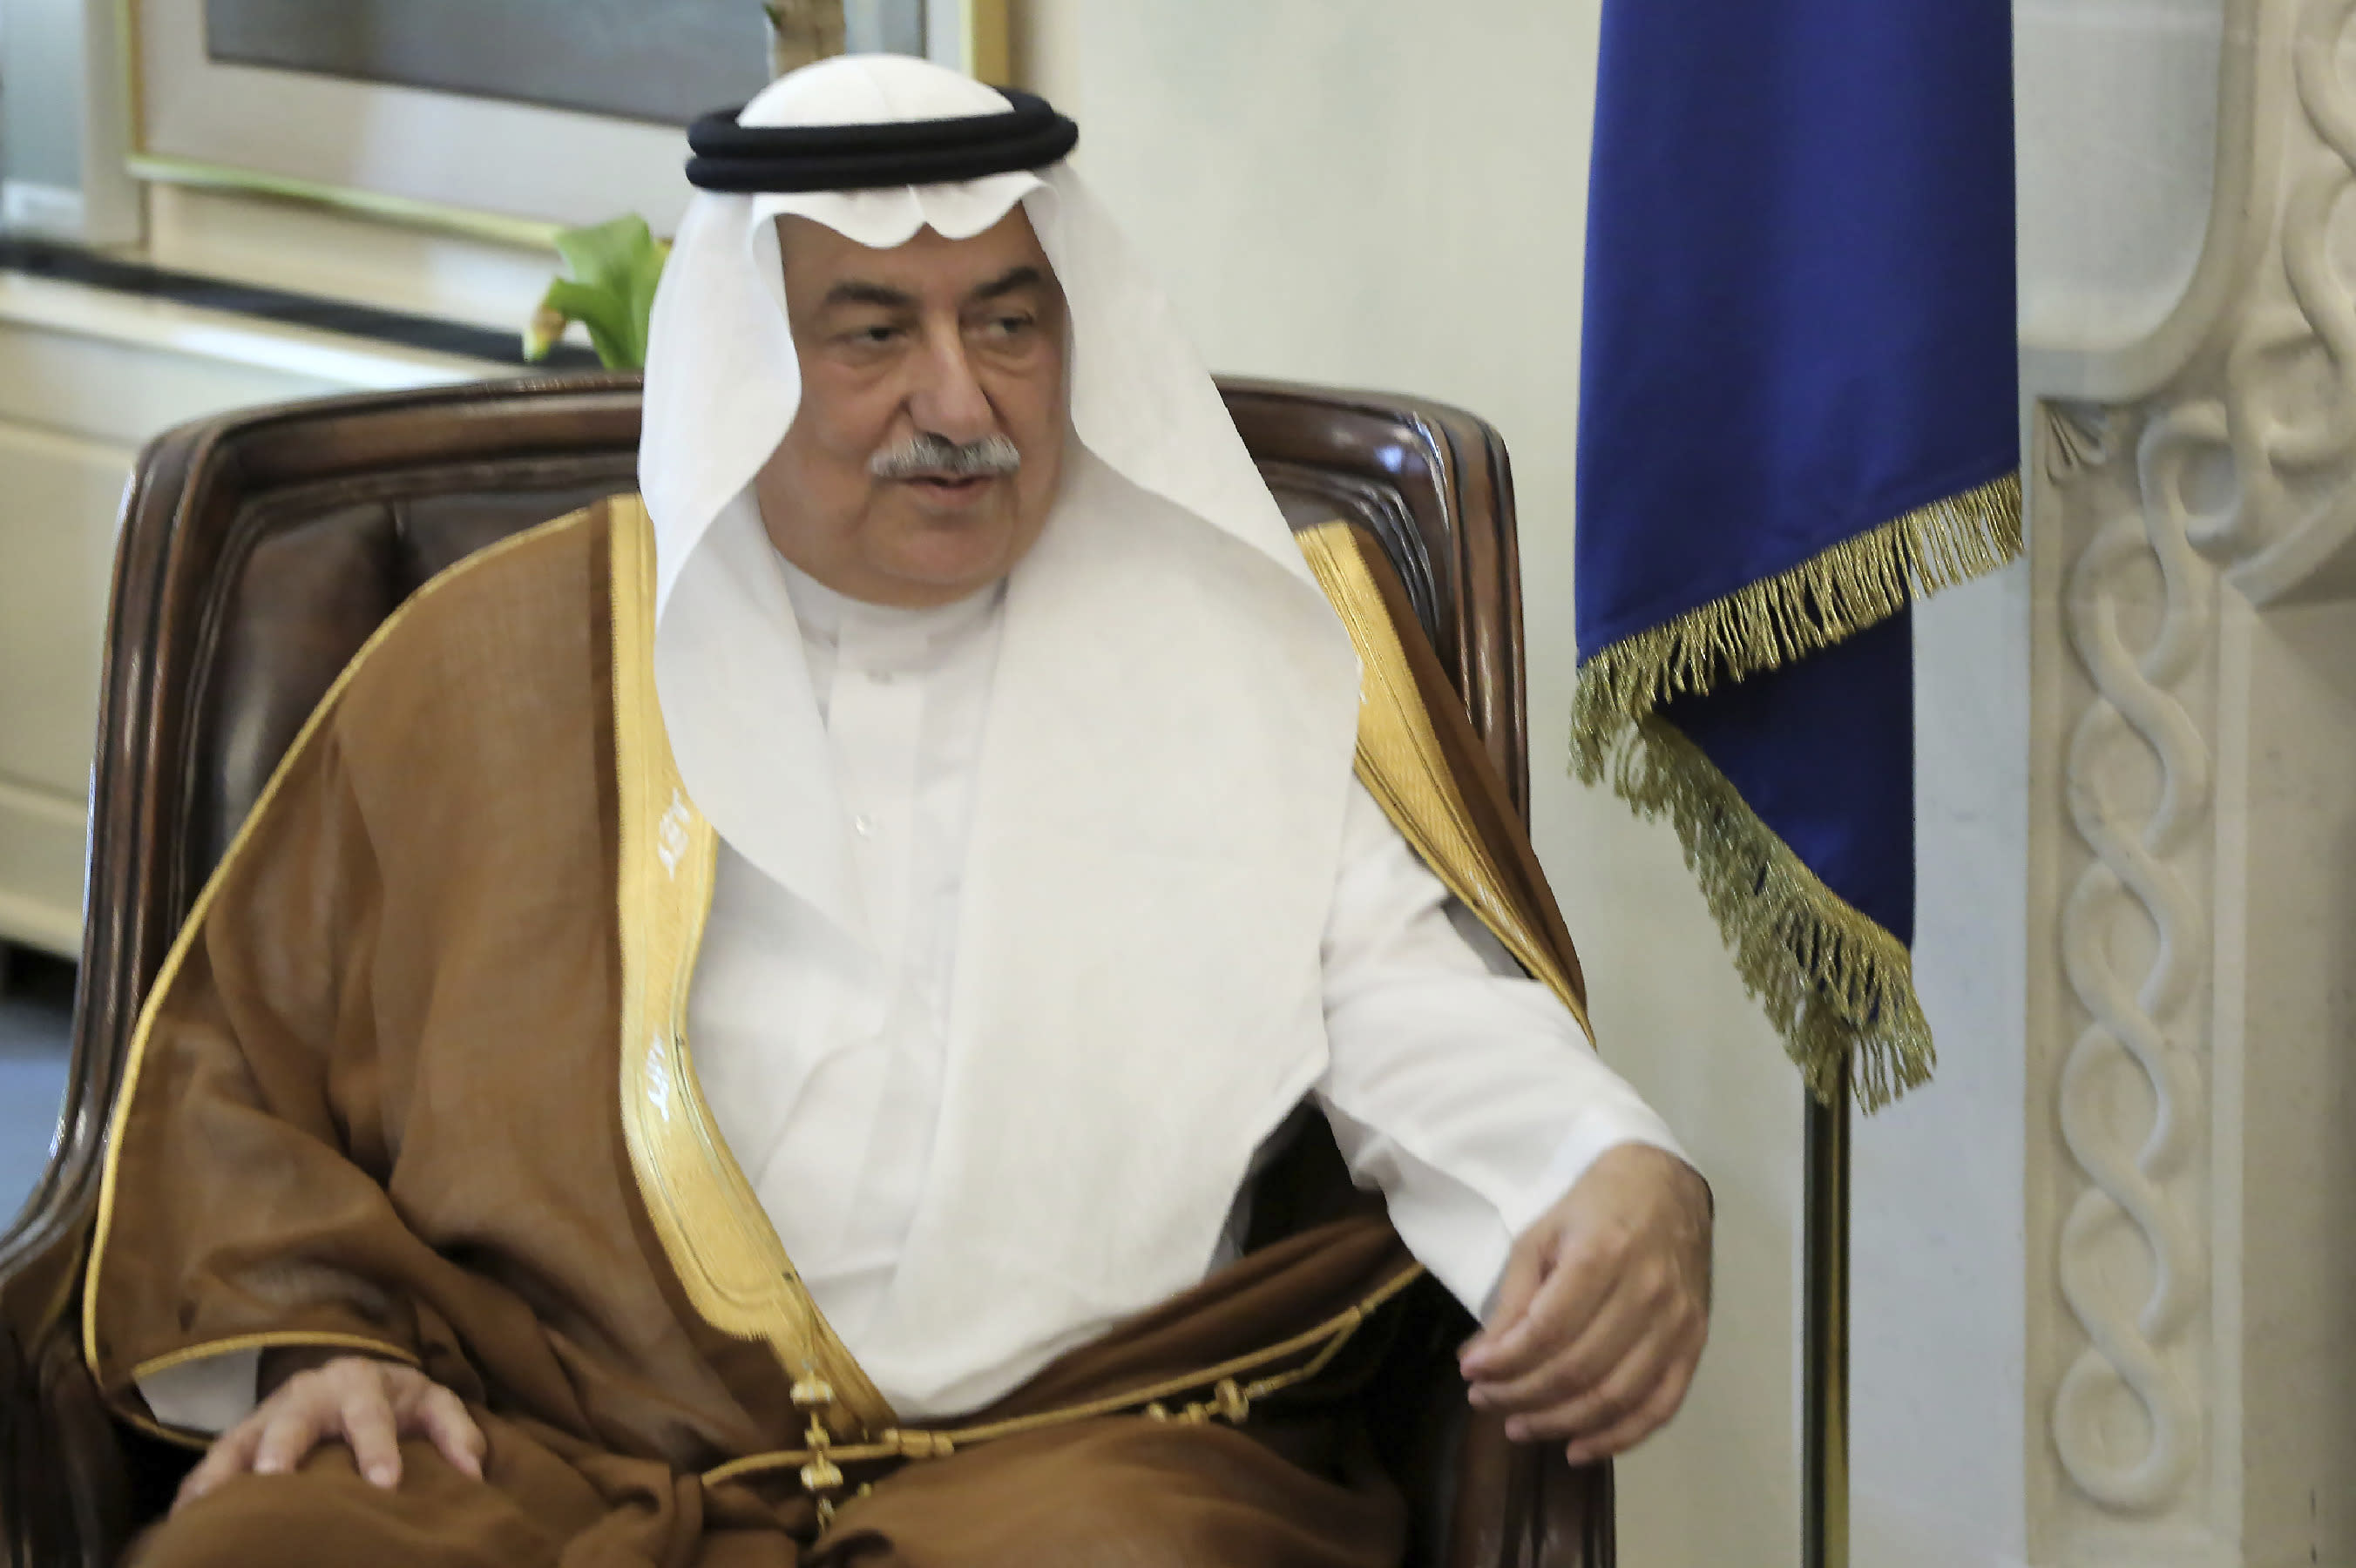 Saudi Foreign Minister Ibrahim Bin Abdulaziz Al-Assaf talks with Cyprus' president Nicos Anastasiades during their meeting at the presidential palace in capital Nicosia, Cyprus, Wednesday Sept. 11, 2019. (AP Photo/Petros Karadjias)